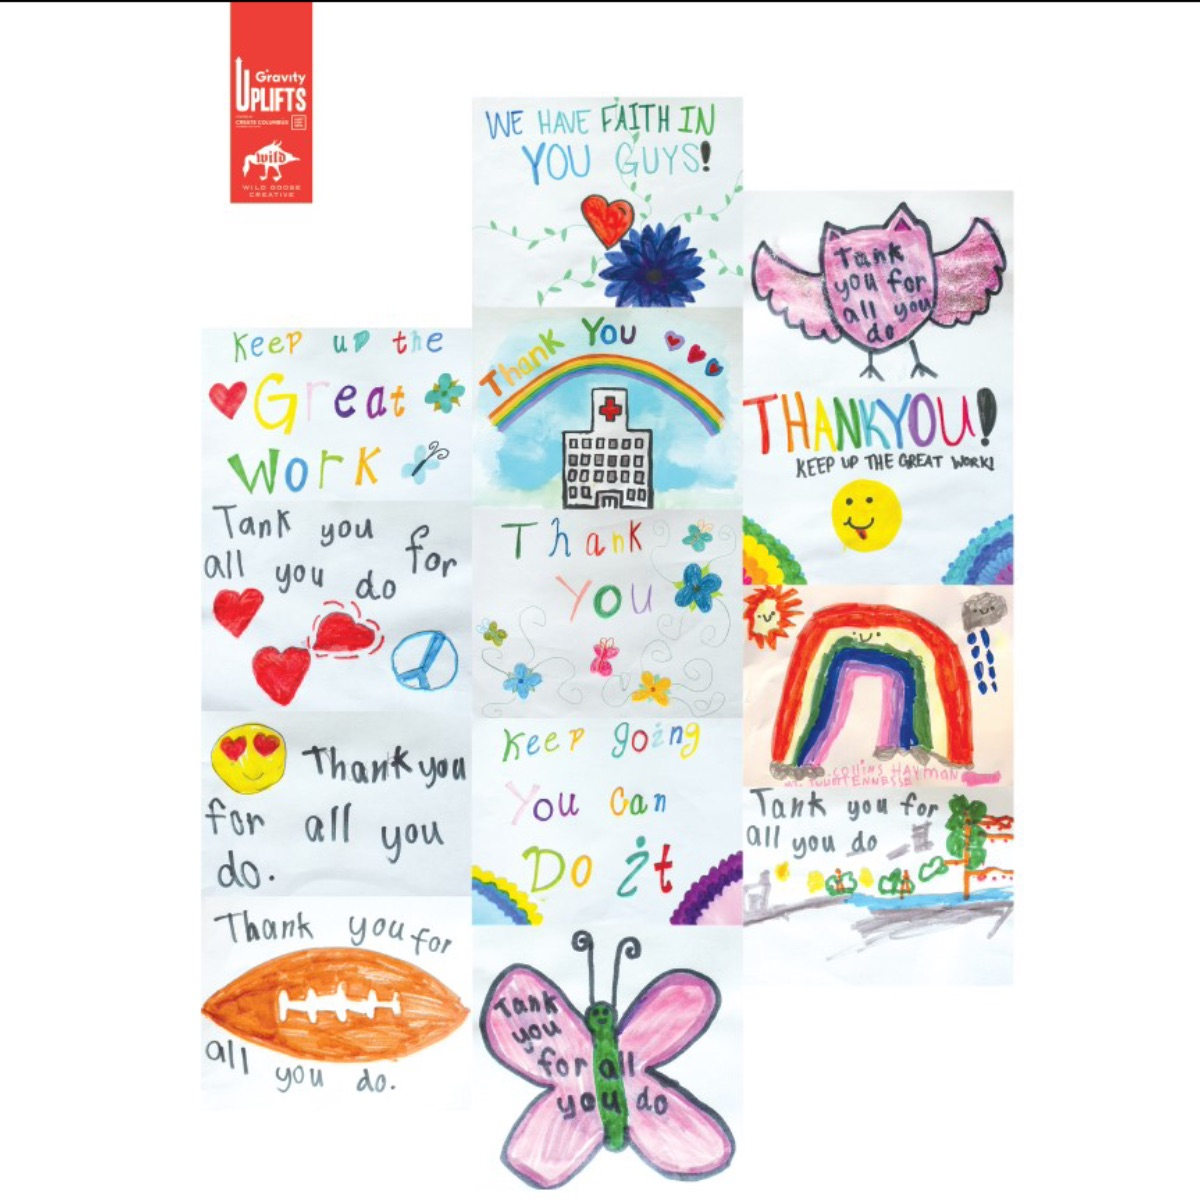 Collection of thank you cards from local artists.